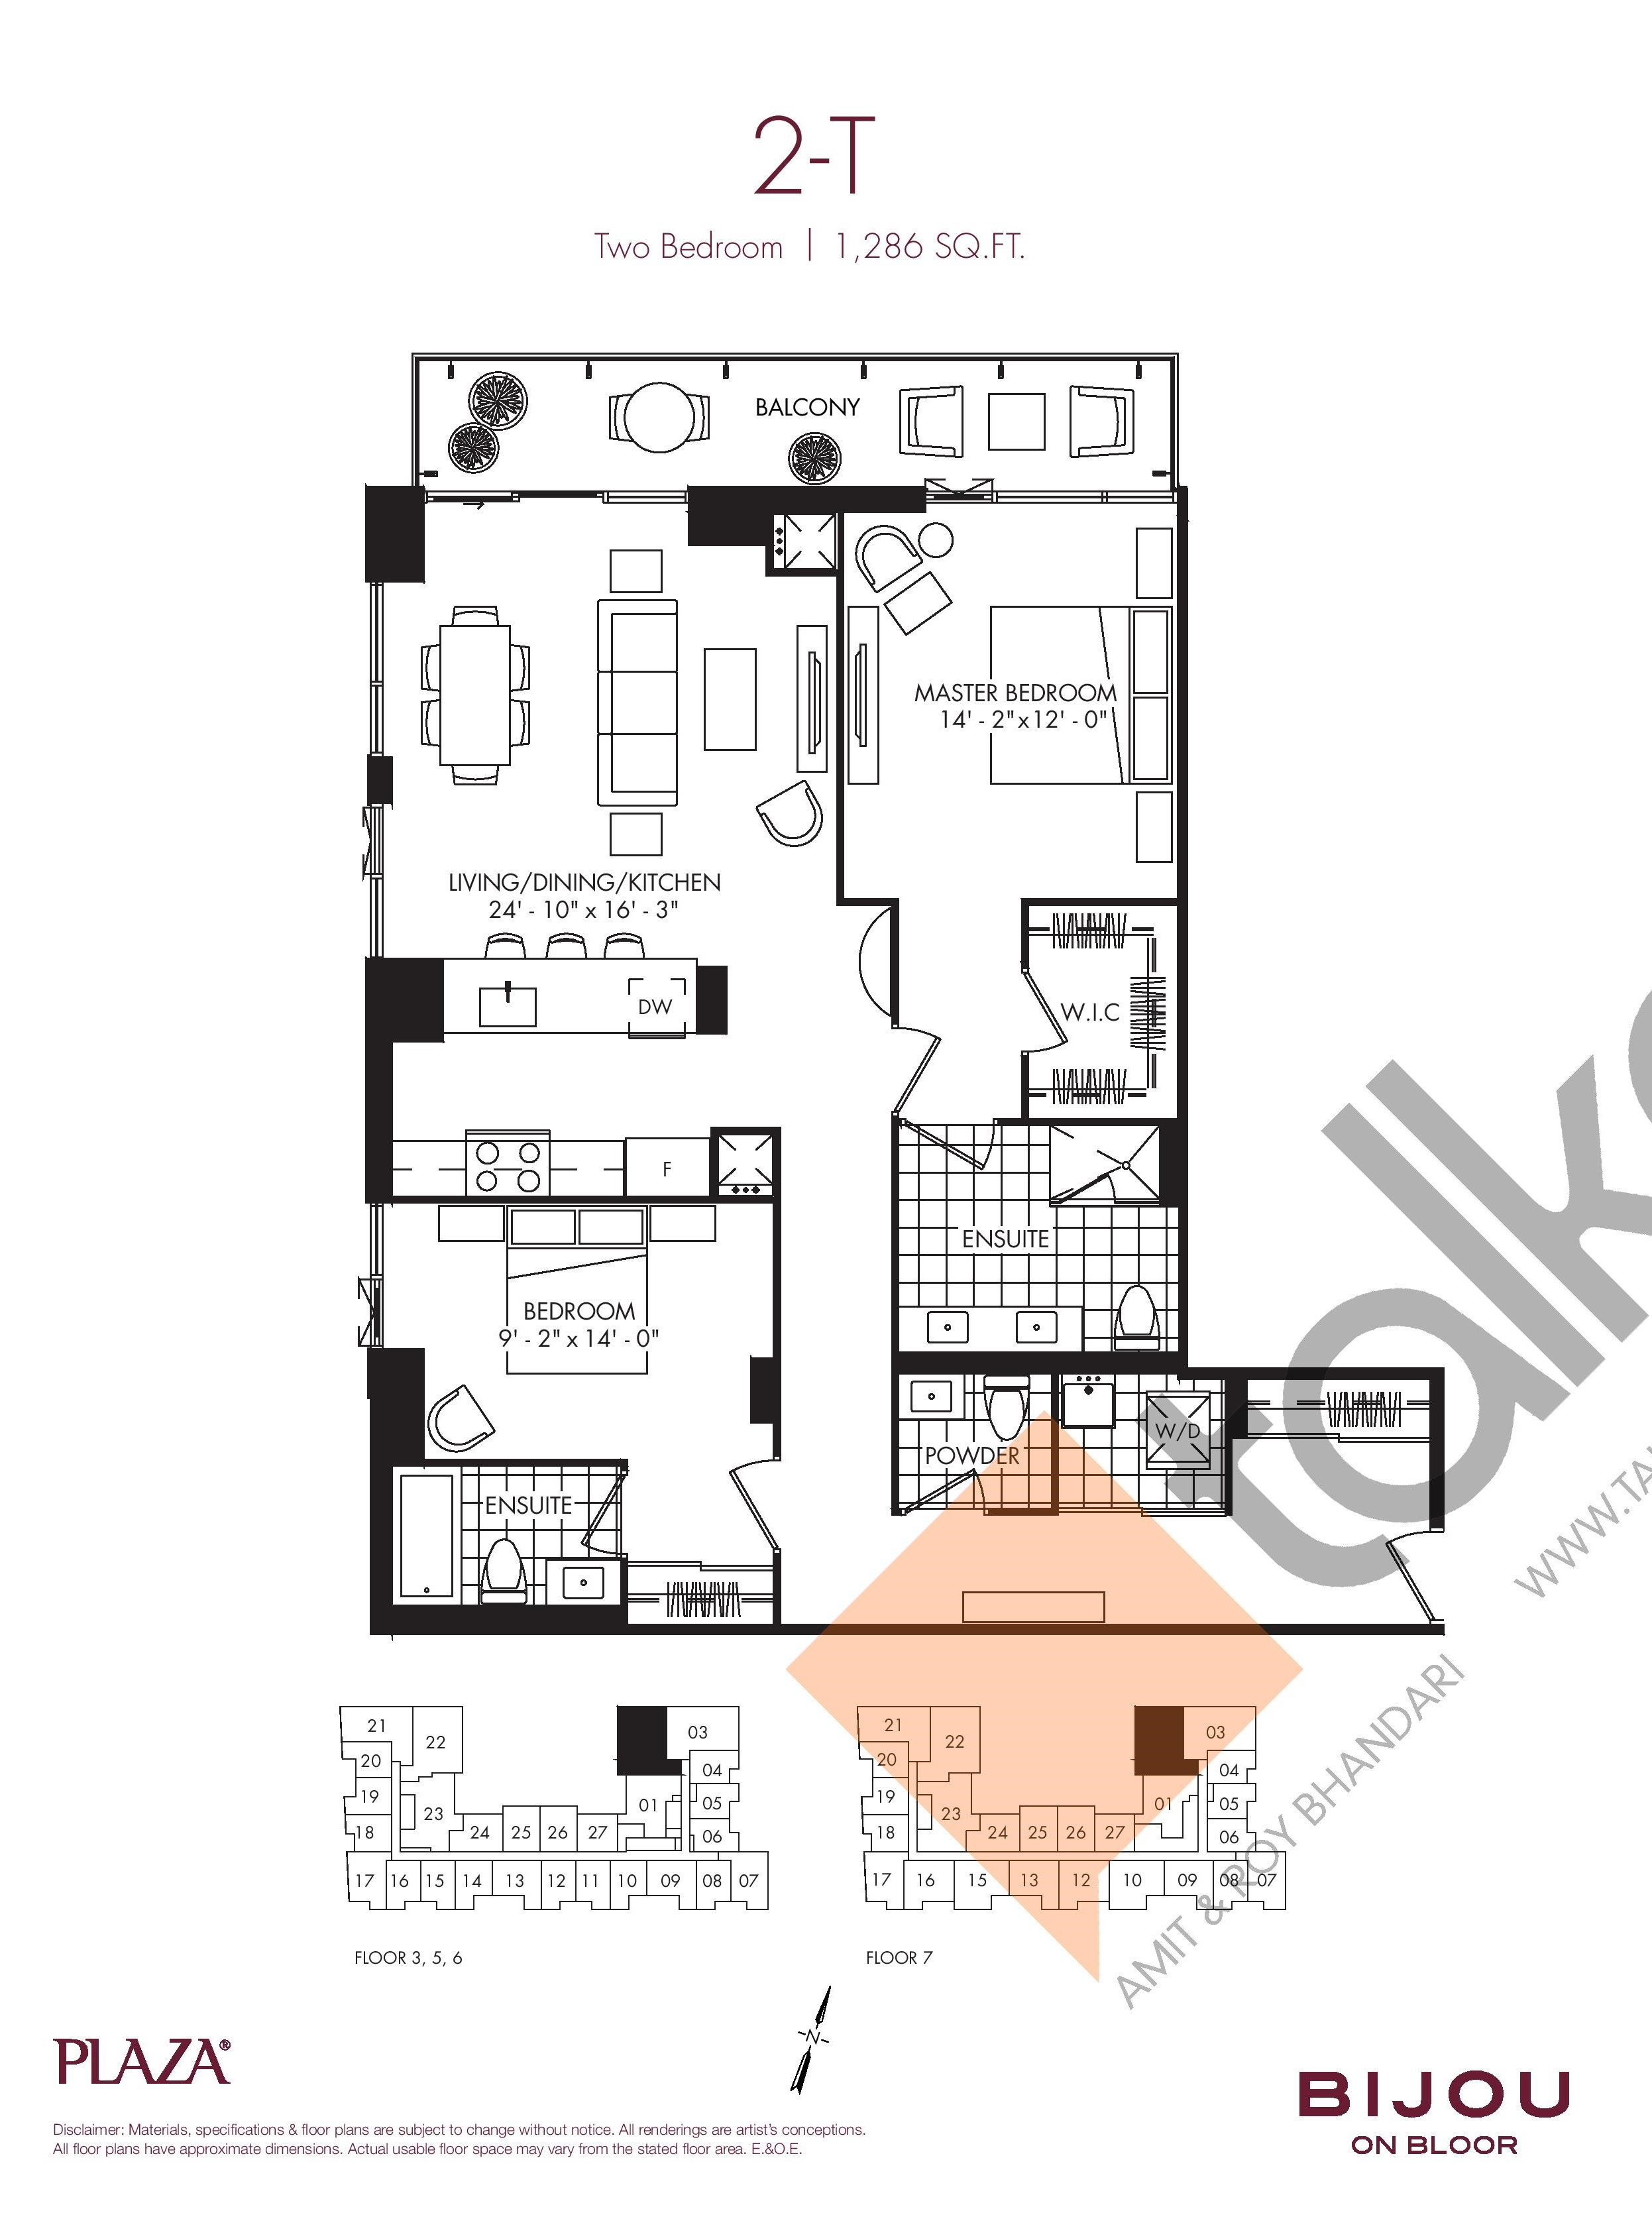 2-T Floor Plan at Bijou On Bloor Condos - 1286 sq.ft